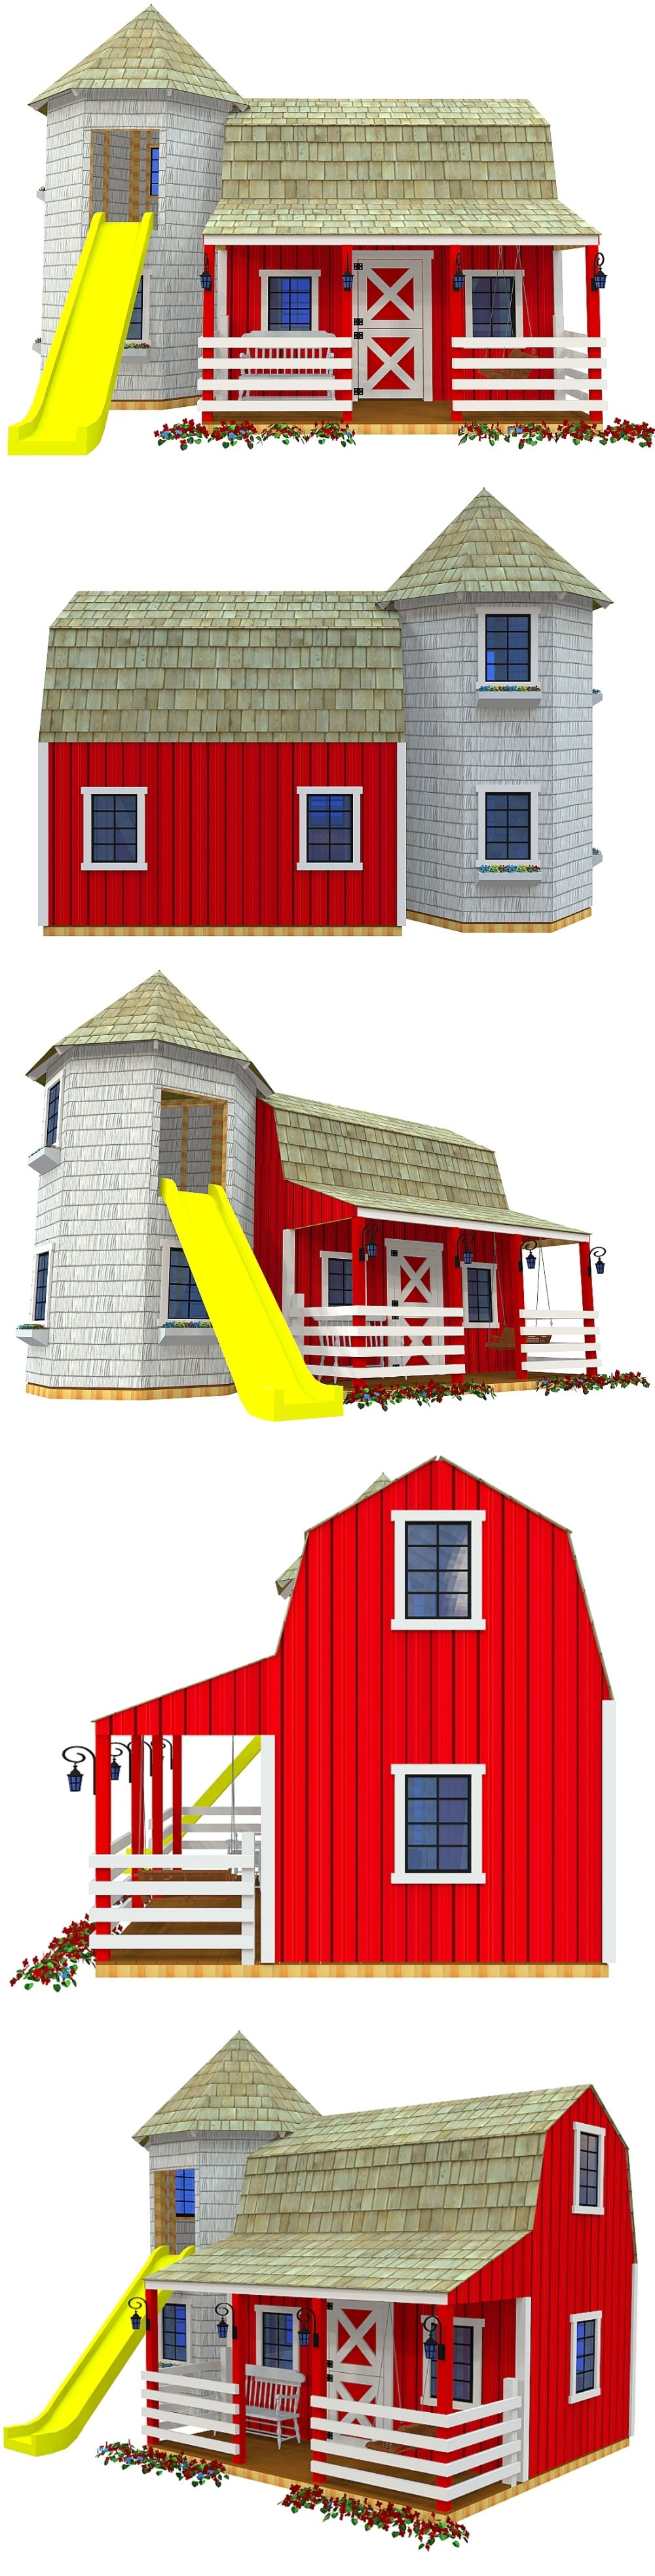 Barn silo playhouse plan cubby houses for kids and for Barn and silo playhouse